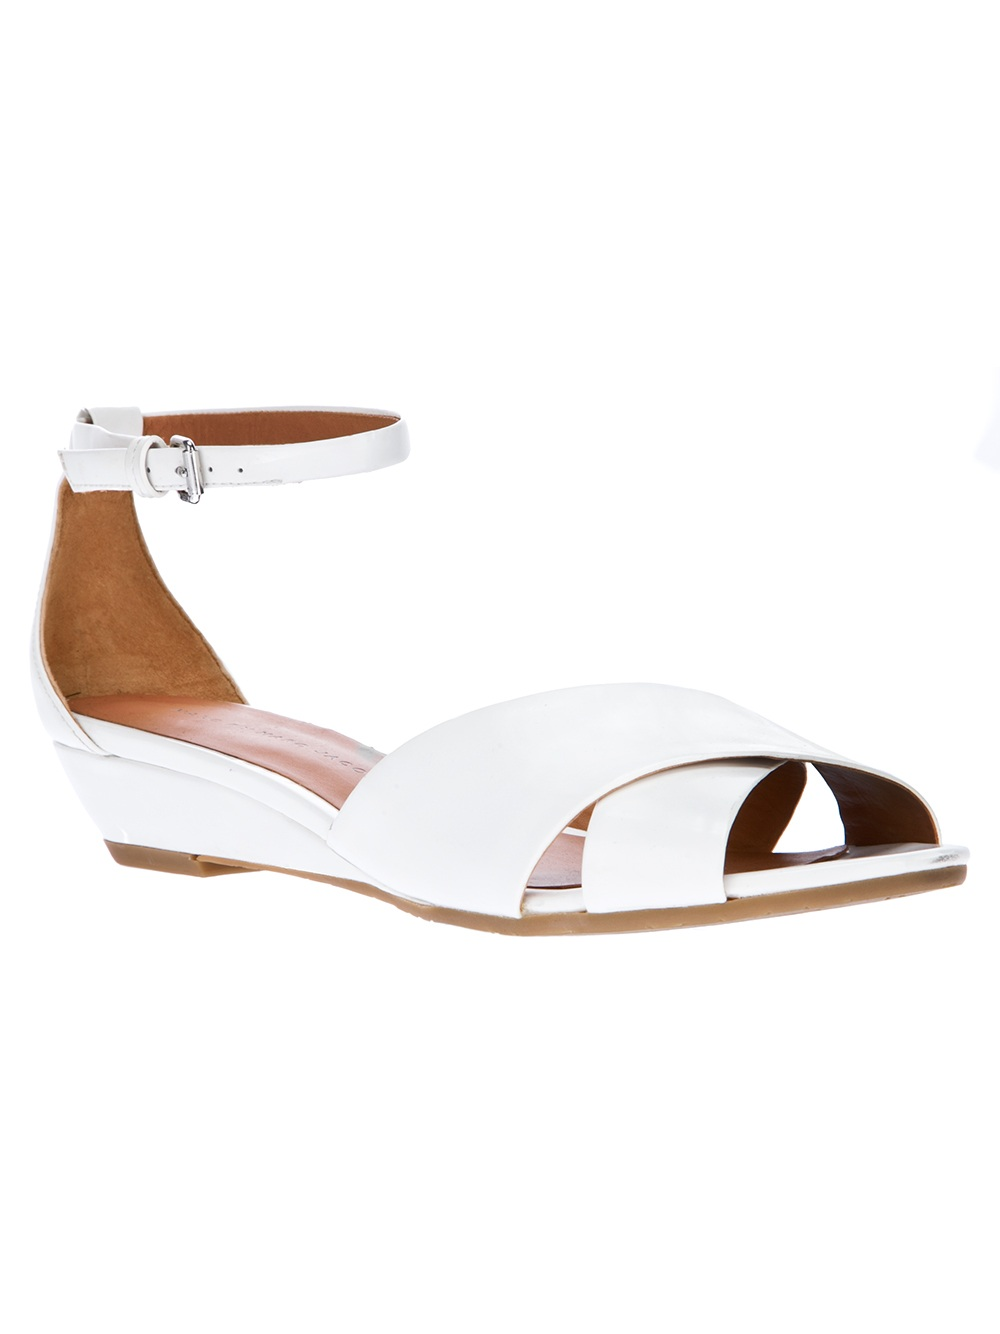 Marc By Marc Jacobs Low Wedge Sandal in